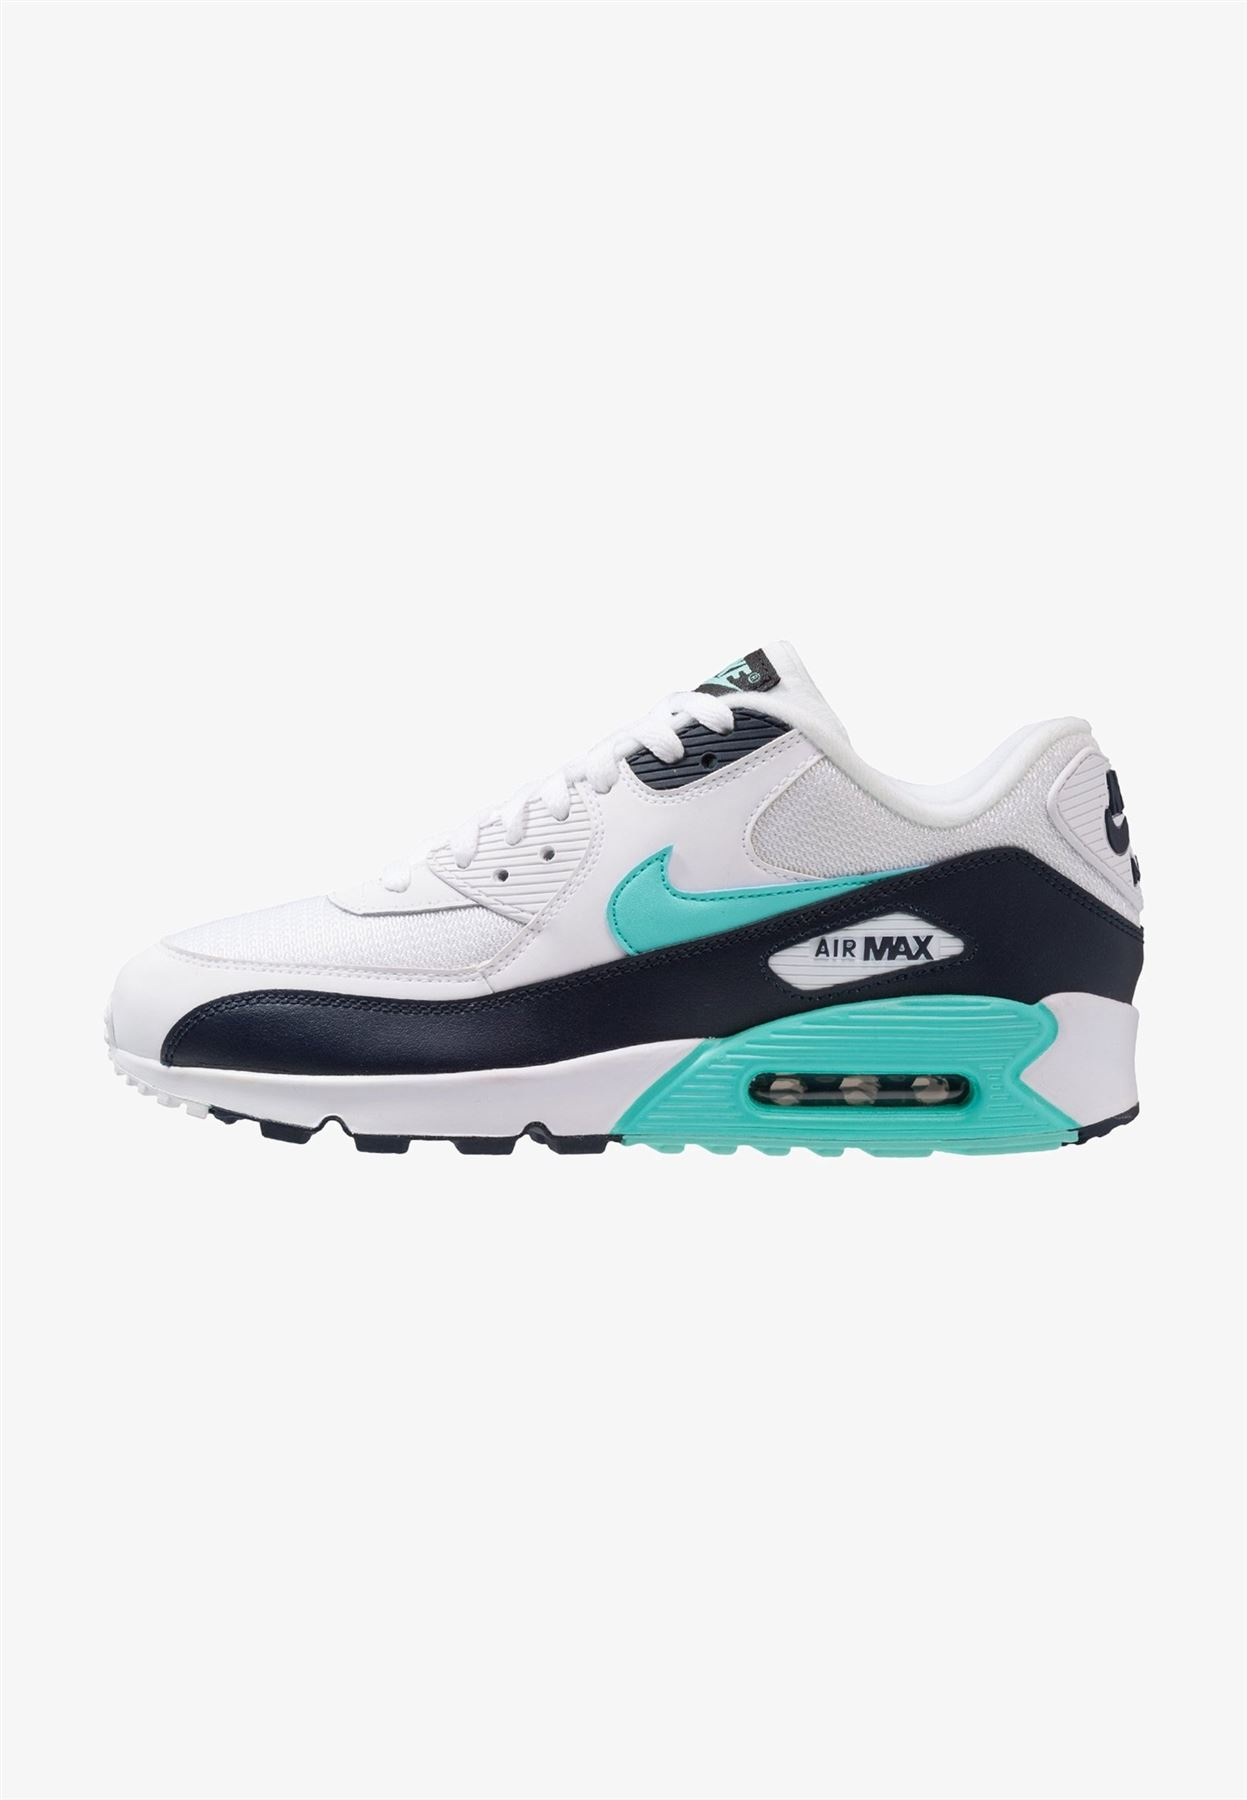 brand new c5a7a 09d7b Details about NIKE Mens Nike Air Max 90 Essential Trainers White  (AJ1285-102)